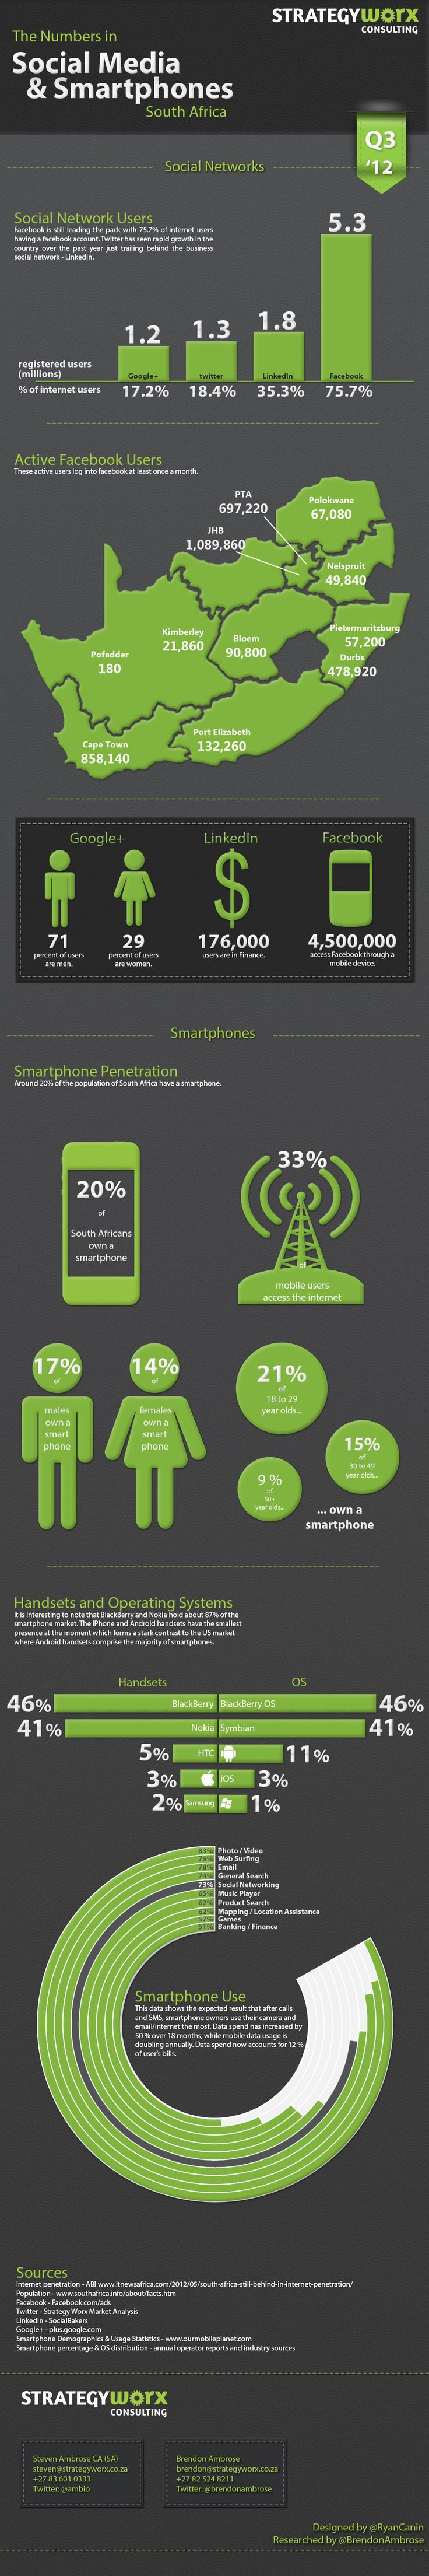 Social Media & smartphones South Africa #infographic